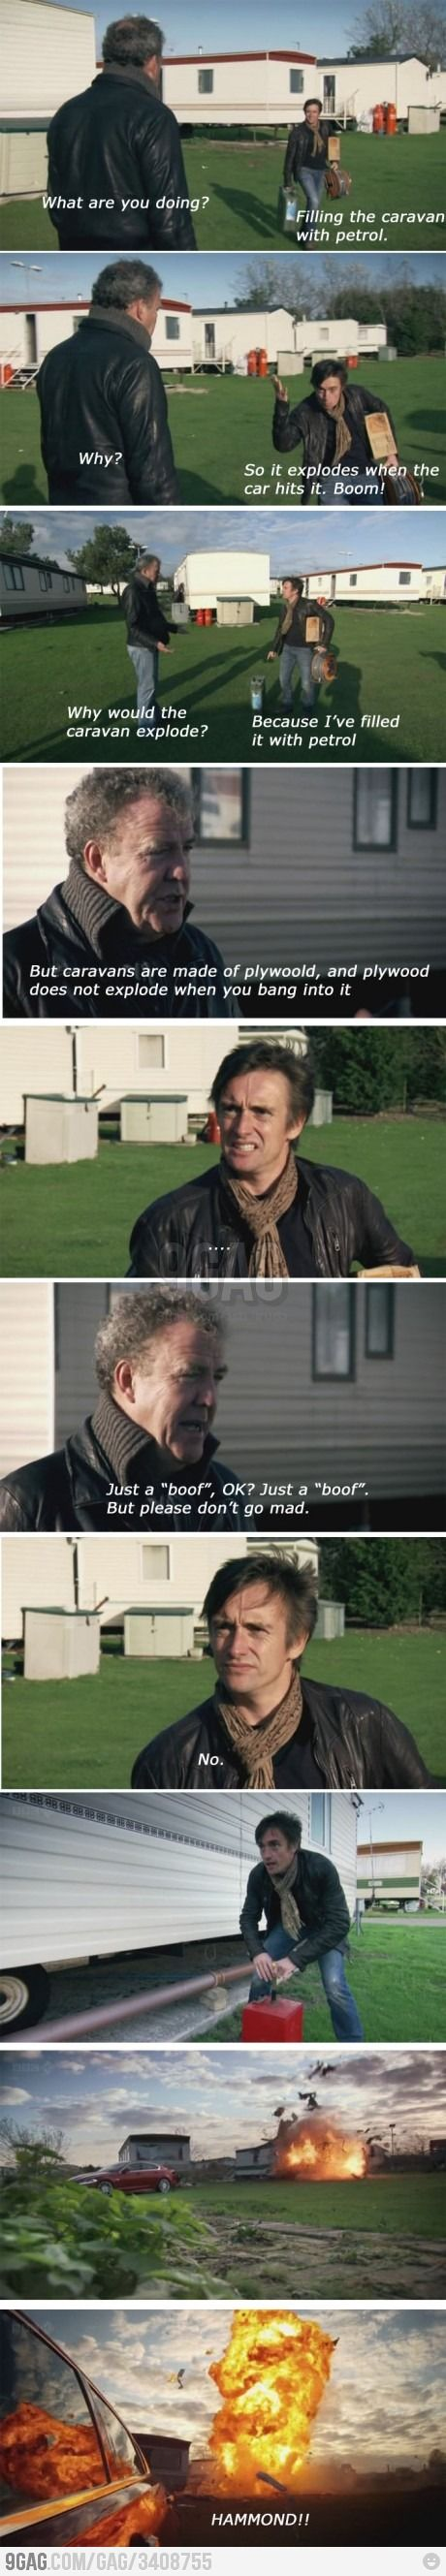 Just another episode of Top Gear.  Don't ask me why I find Richard Hammond absolutely adorable.